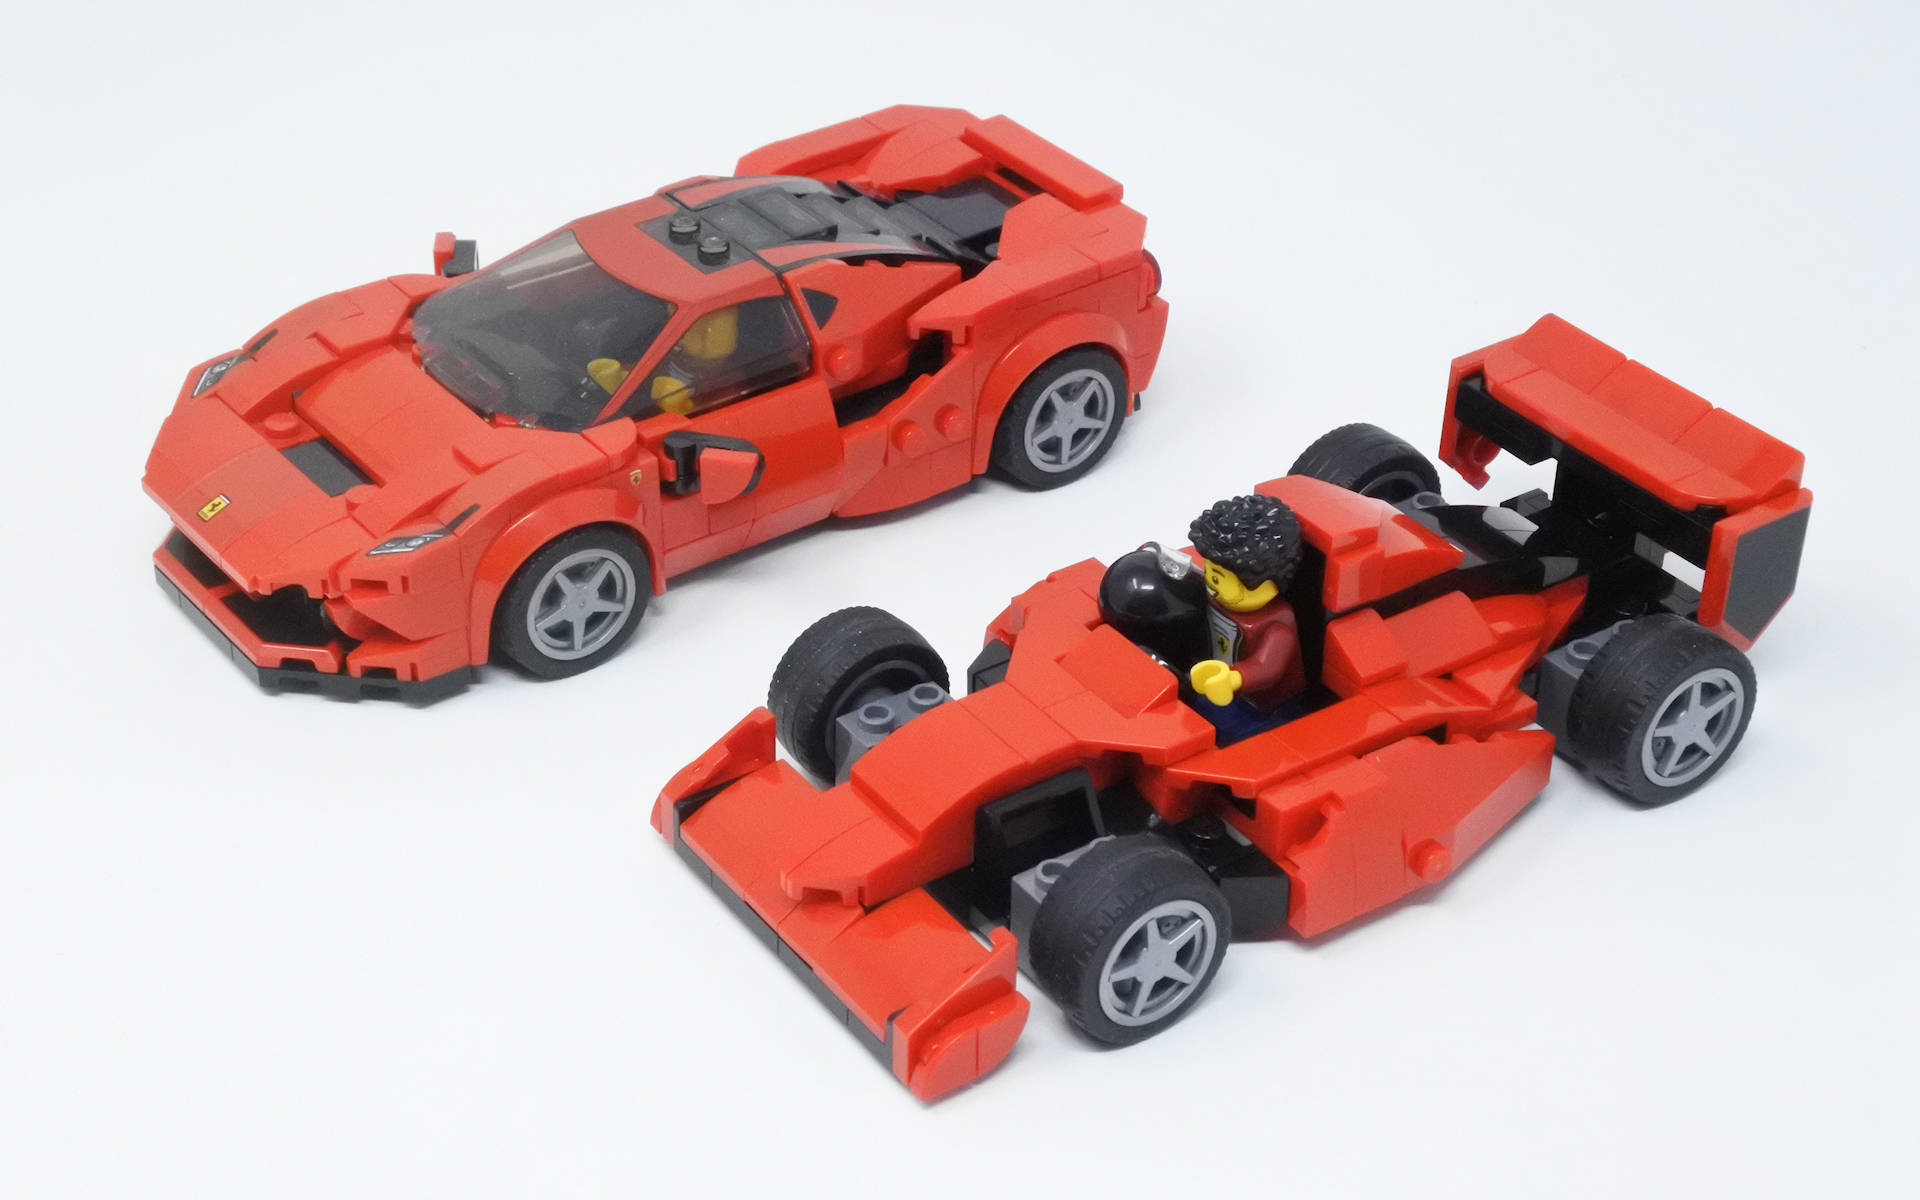 LEGO Speed Champions in Formula1